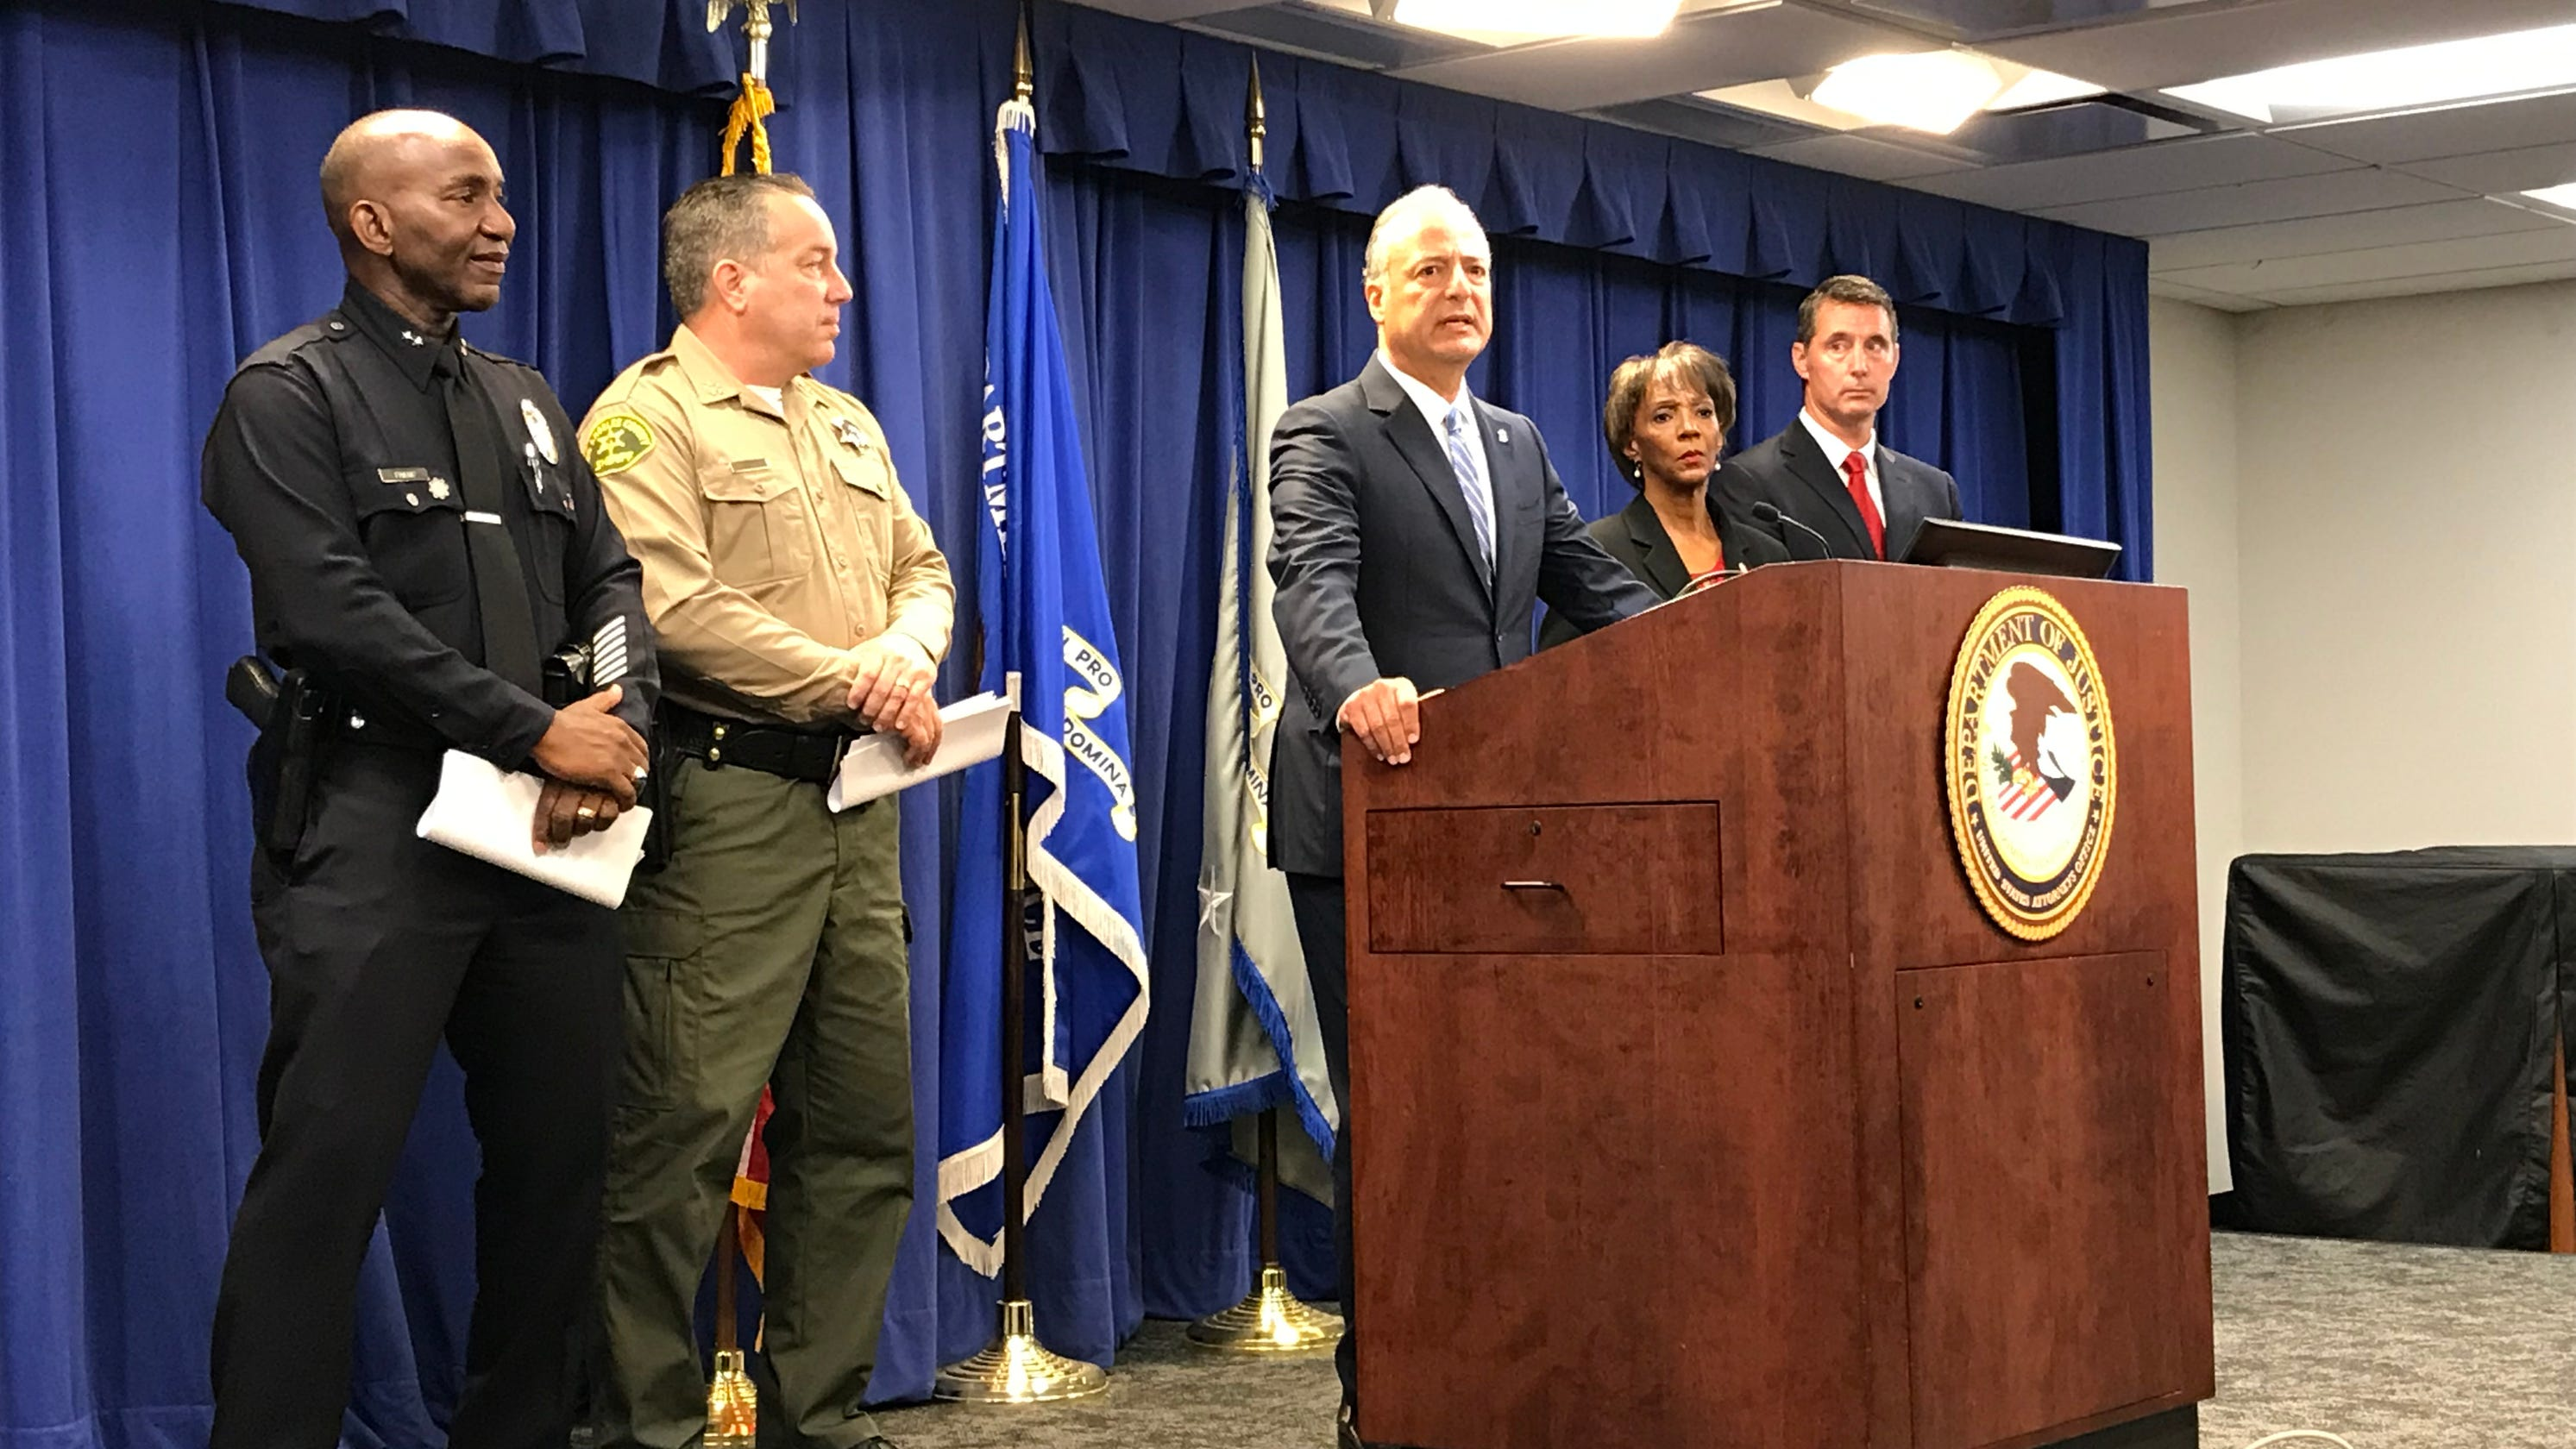 MS-13 gang members indicted after 'medieval-style' killing spree in Los Angeles